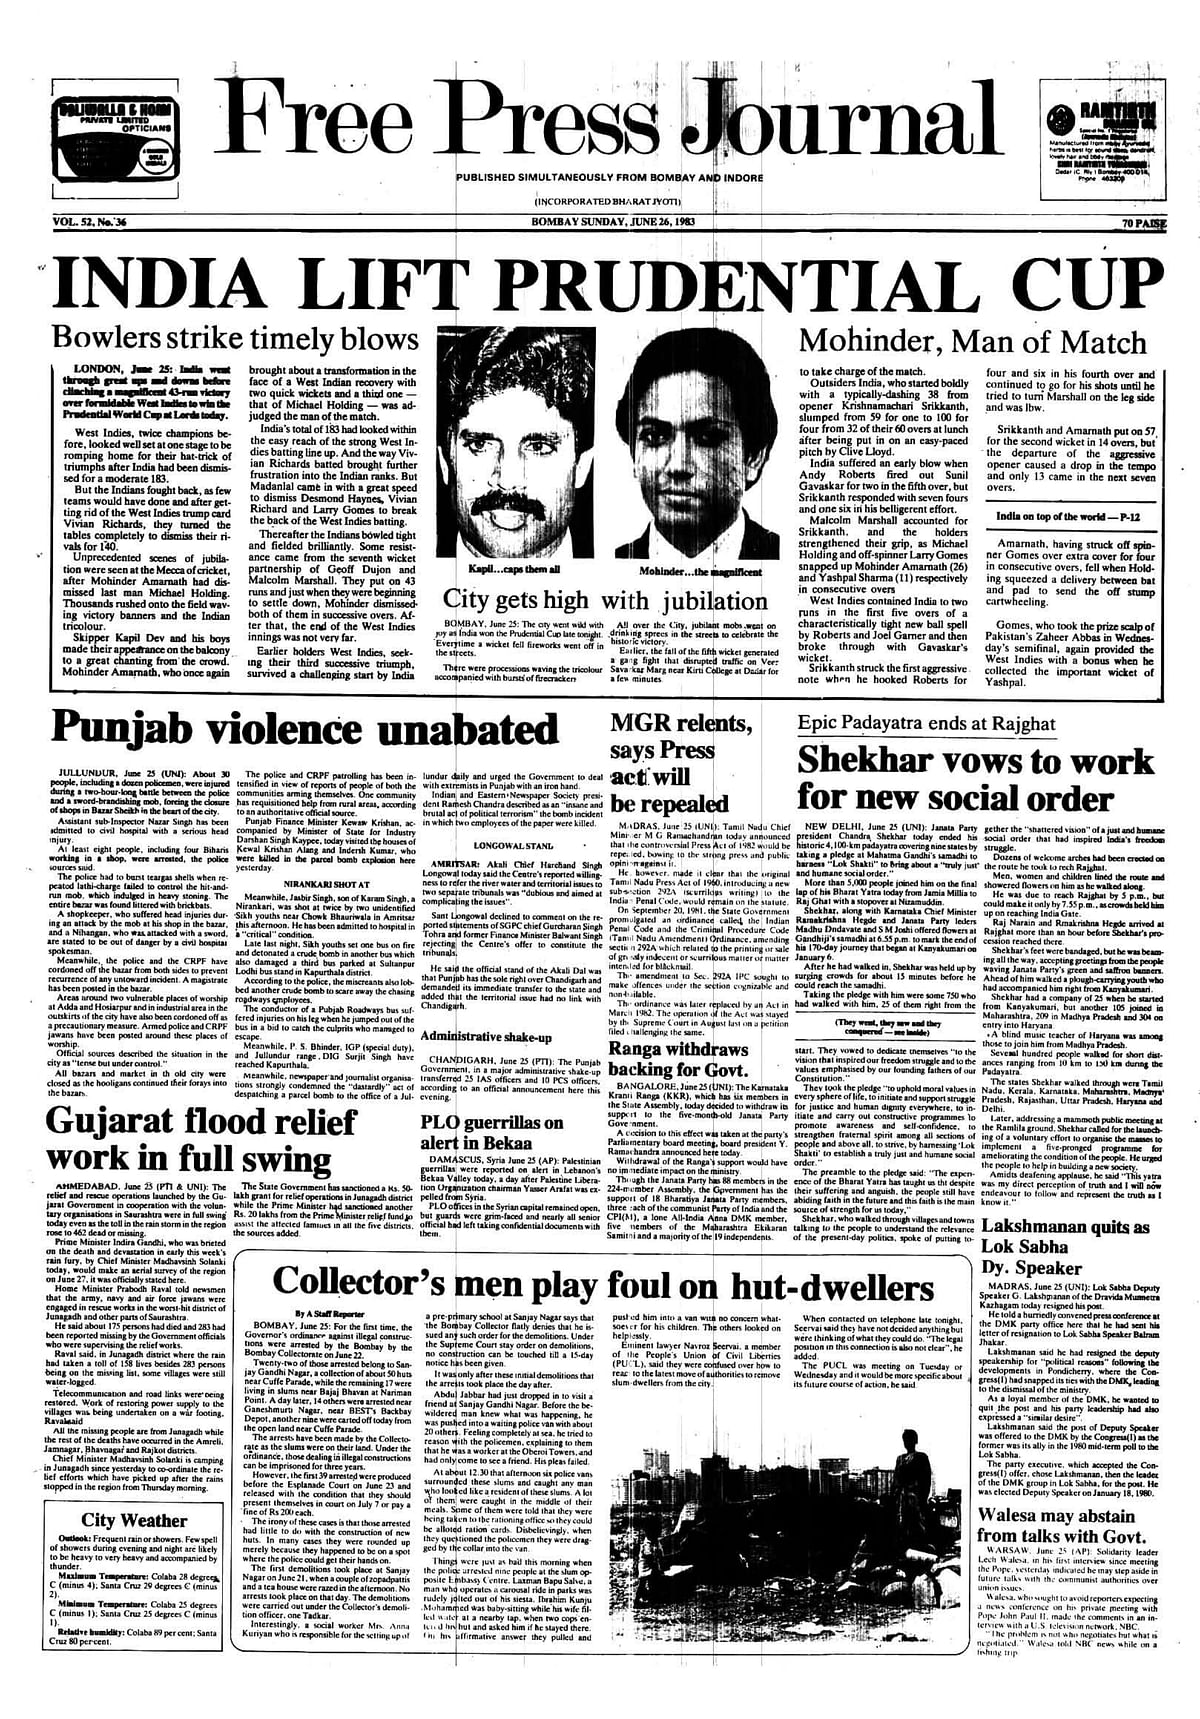 From the FPJ Archives: When India made World Cup history in 1983